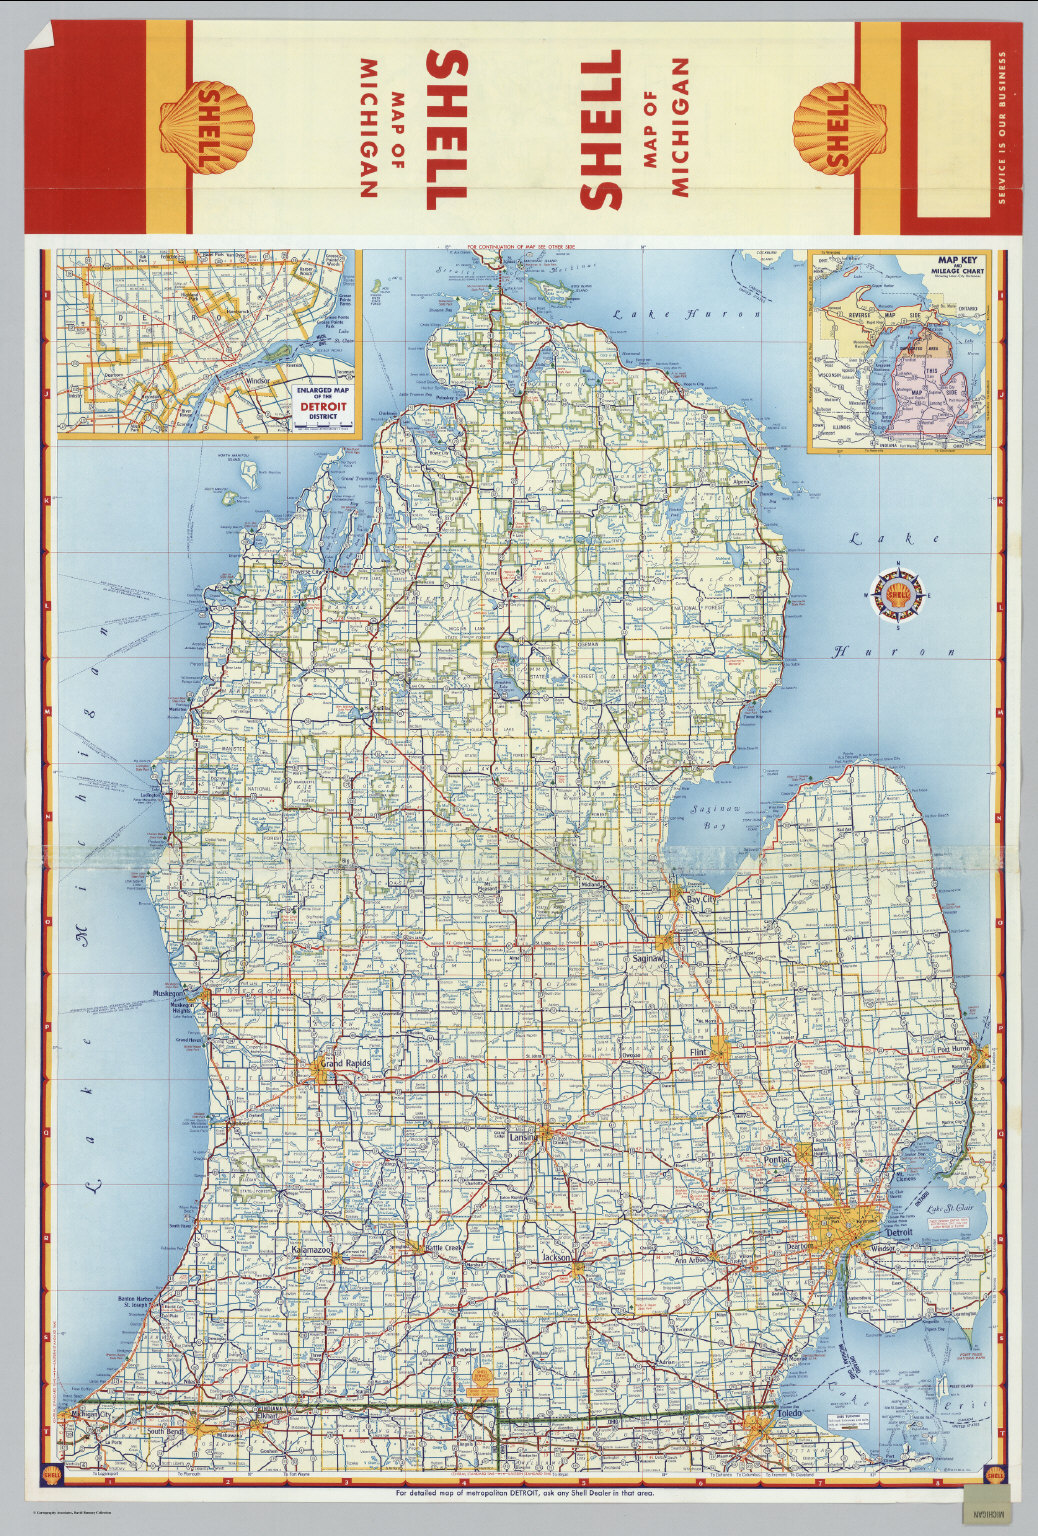 Shell highway map of michigan southern portion david rumsey shell highway map of michigan southern portion gumiabroncs Images